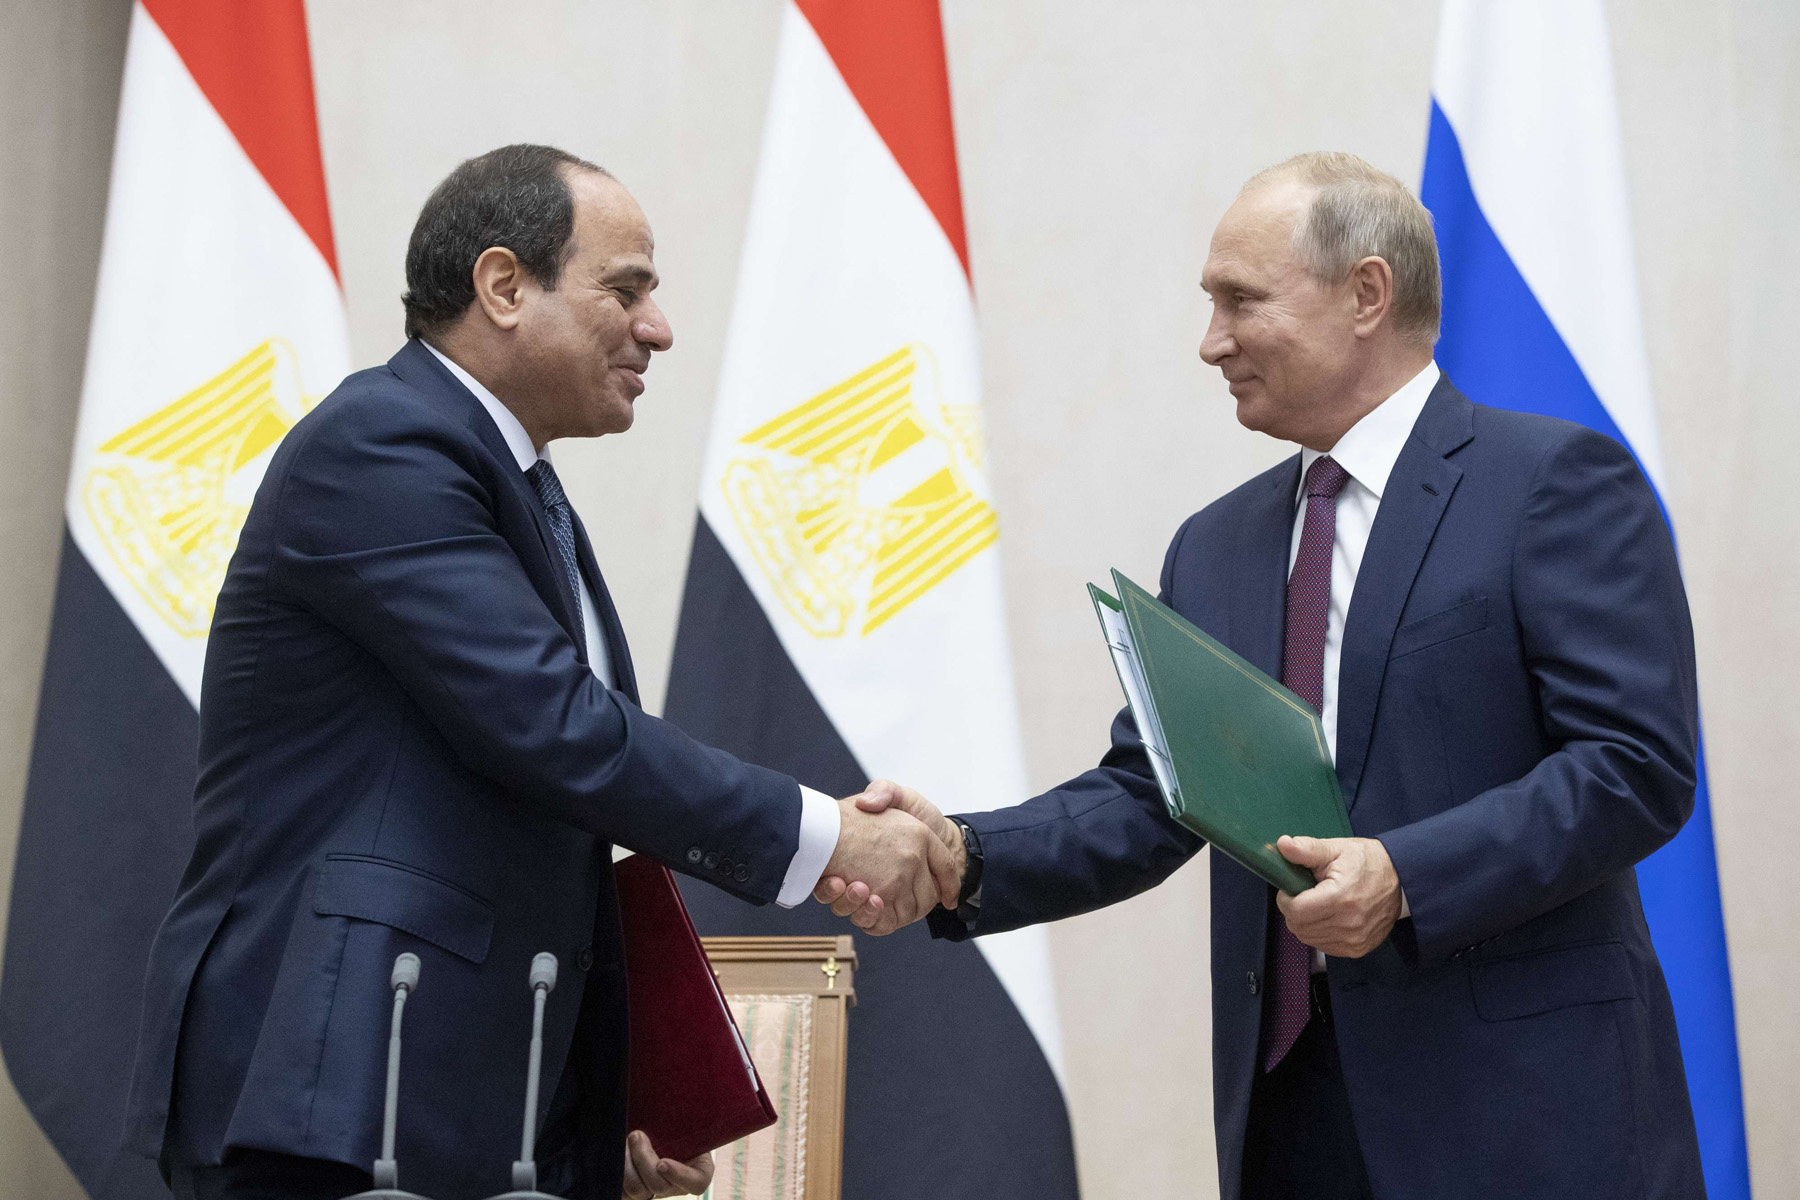 Russian President Vladimir Putin (R) and Egyptian President Abdel Fattah al-Sisi shake hands after a signing ceremony in Sochi, on October 17. (AP)